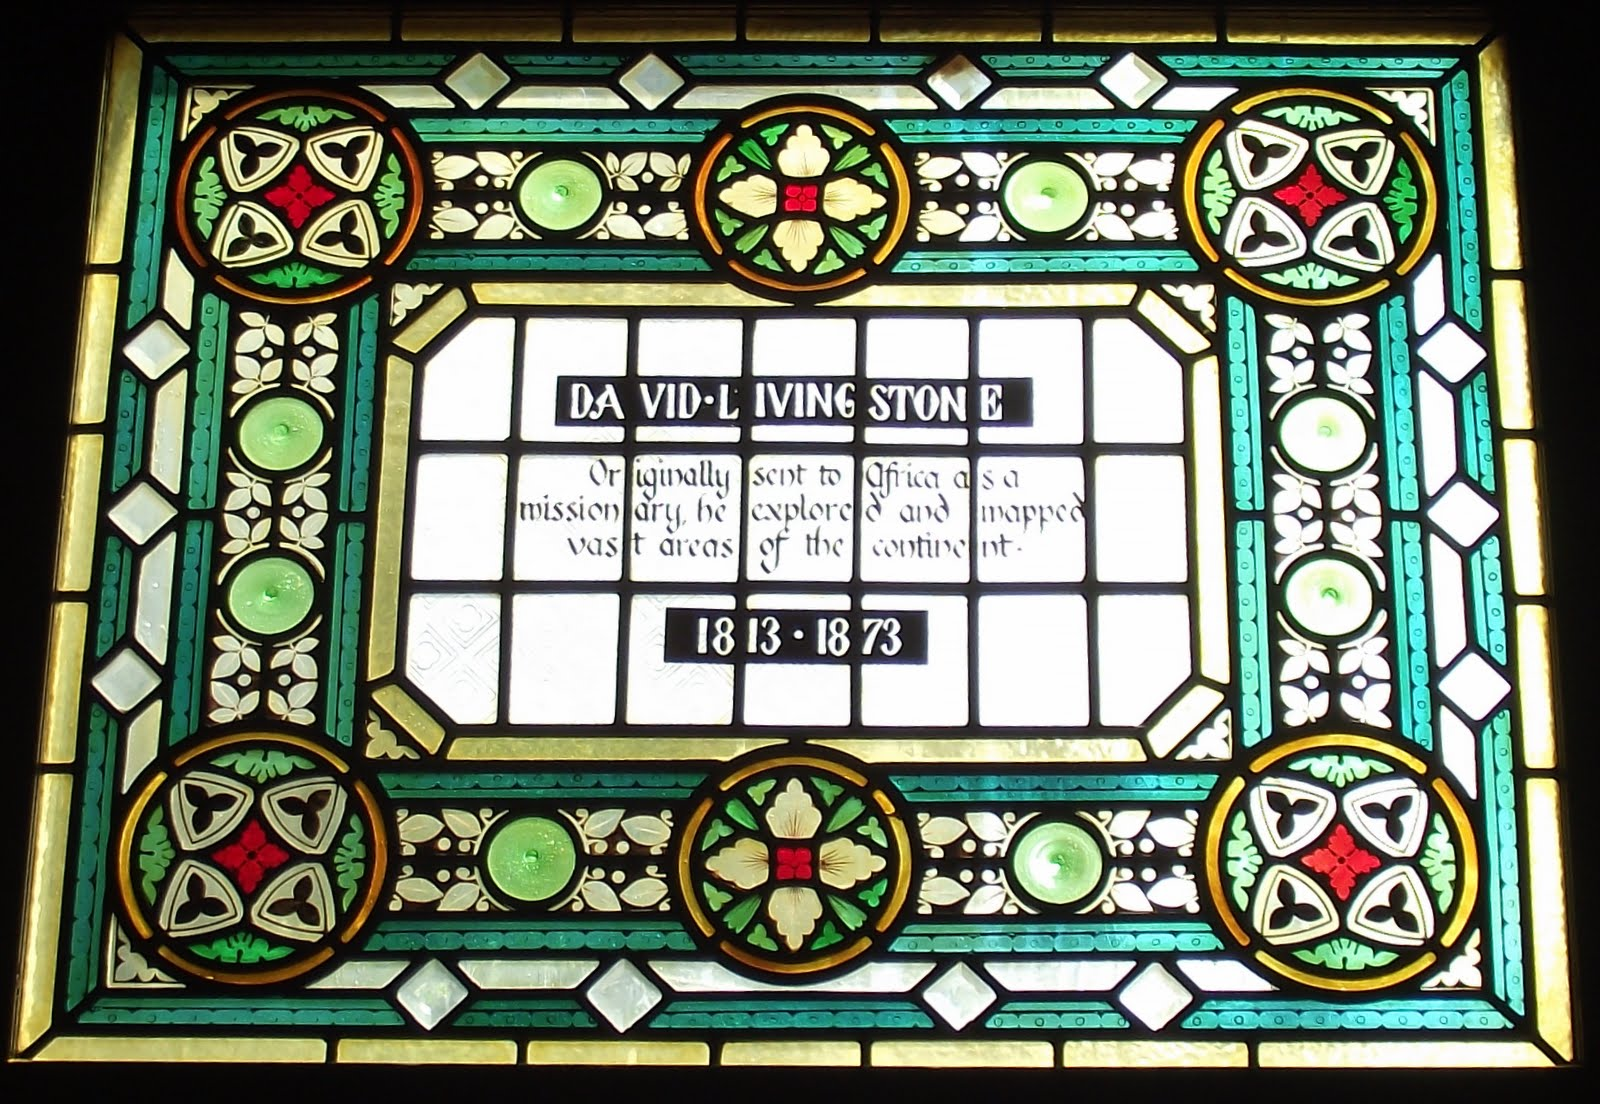 David Livingstone stained glass at The Champion pub